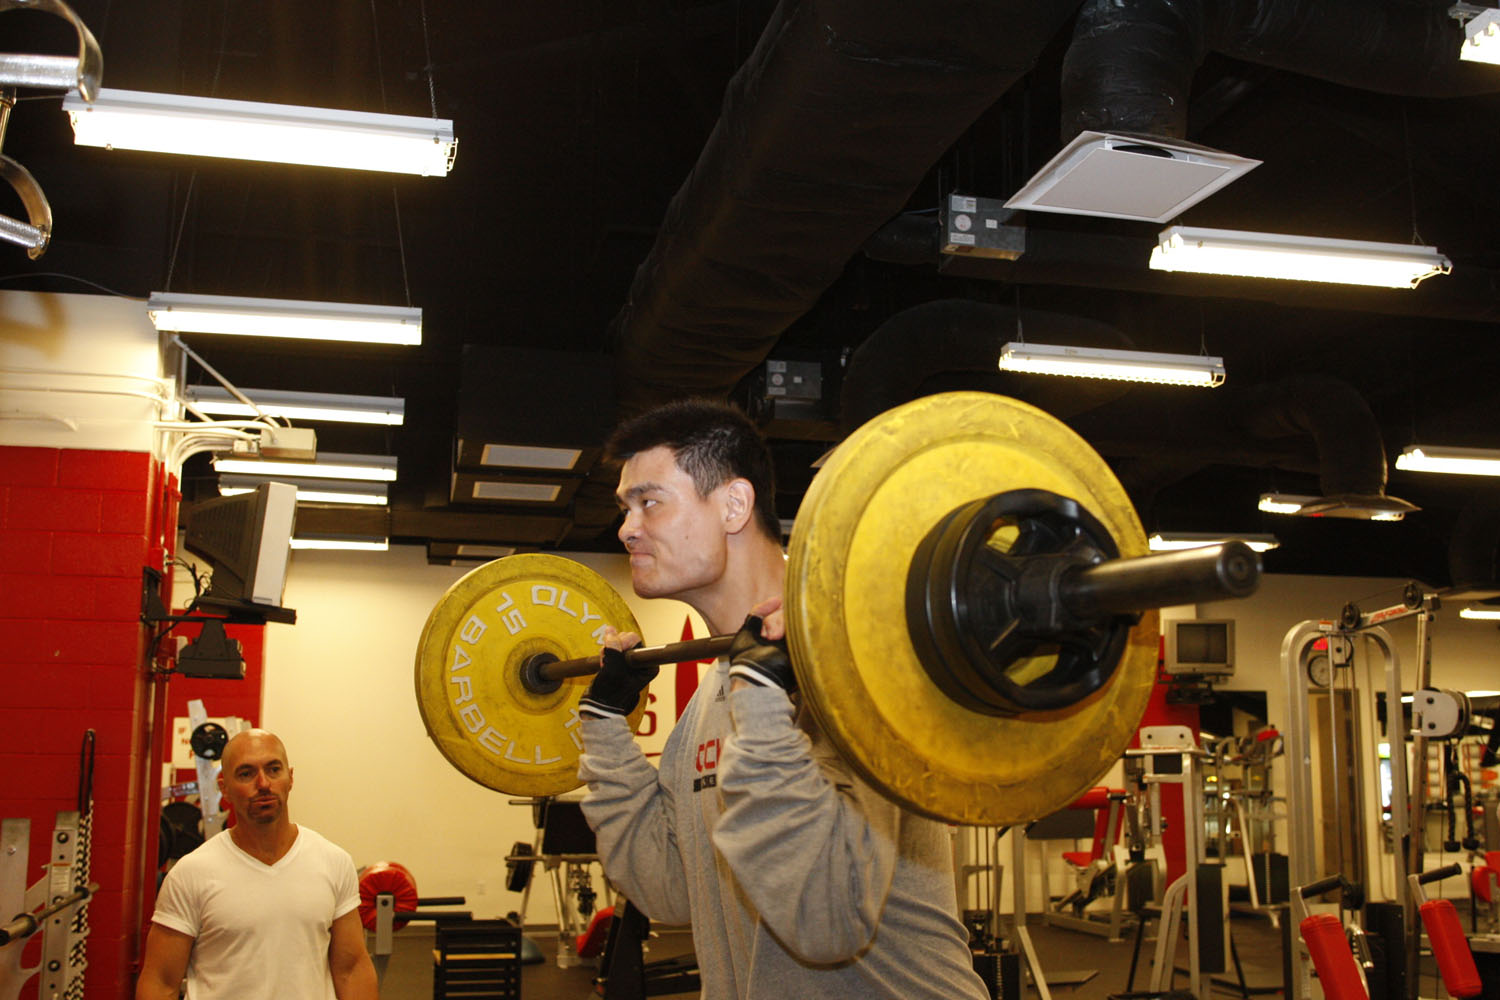 Yao Ming lifting weights during workout in gym at Toyota Center in Houston, Texas in 2007.